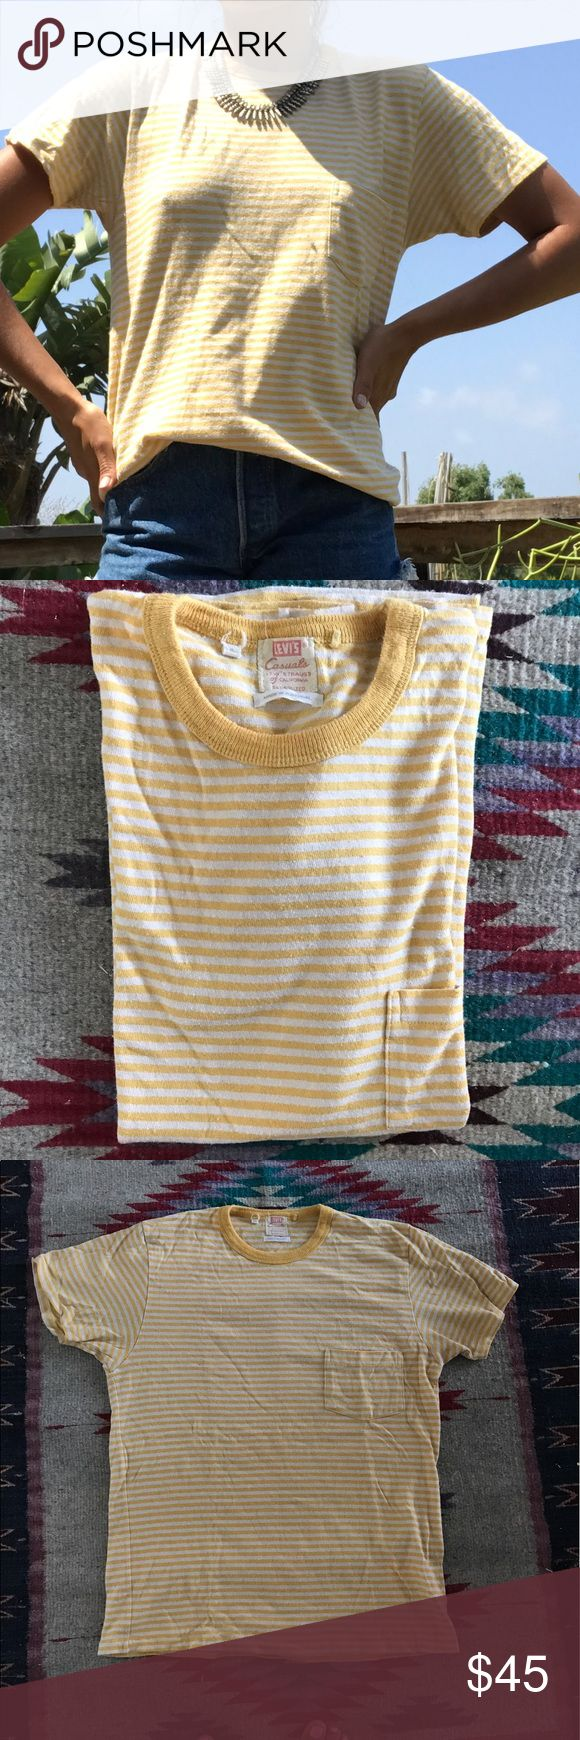 LEVIS // Vintage Style Pocket Tee Amazing quality shirt in yellow and white stripe. This is a unisex style that is oversized on women. One pocket. Thick cotton. Levi's Tops Tees - Short Sleeve